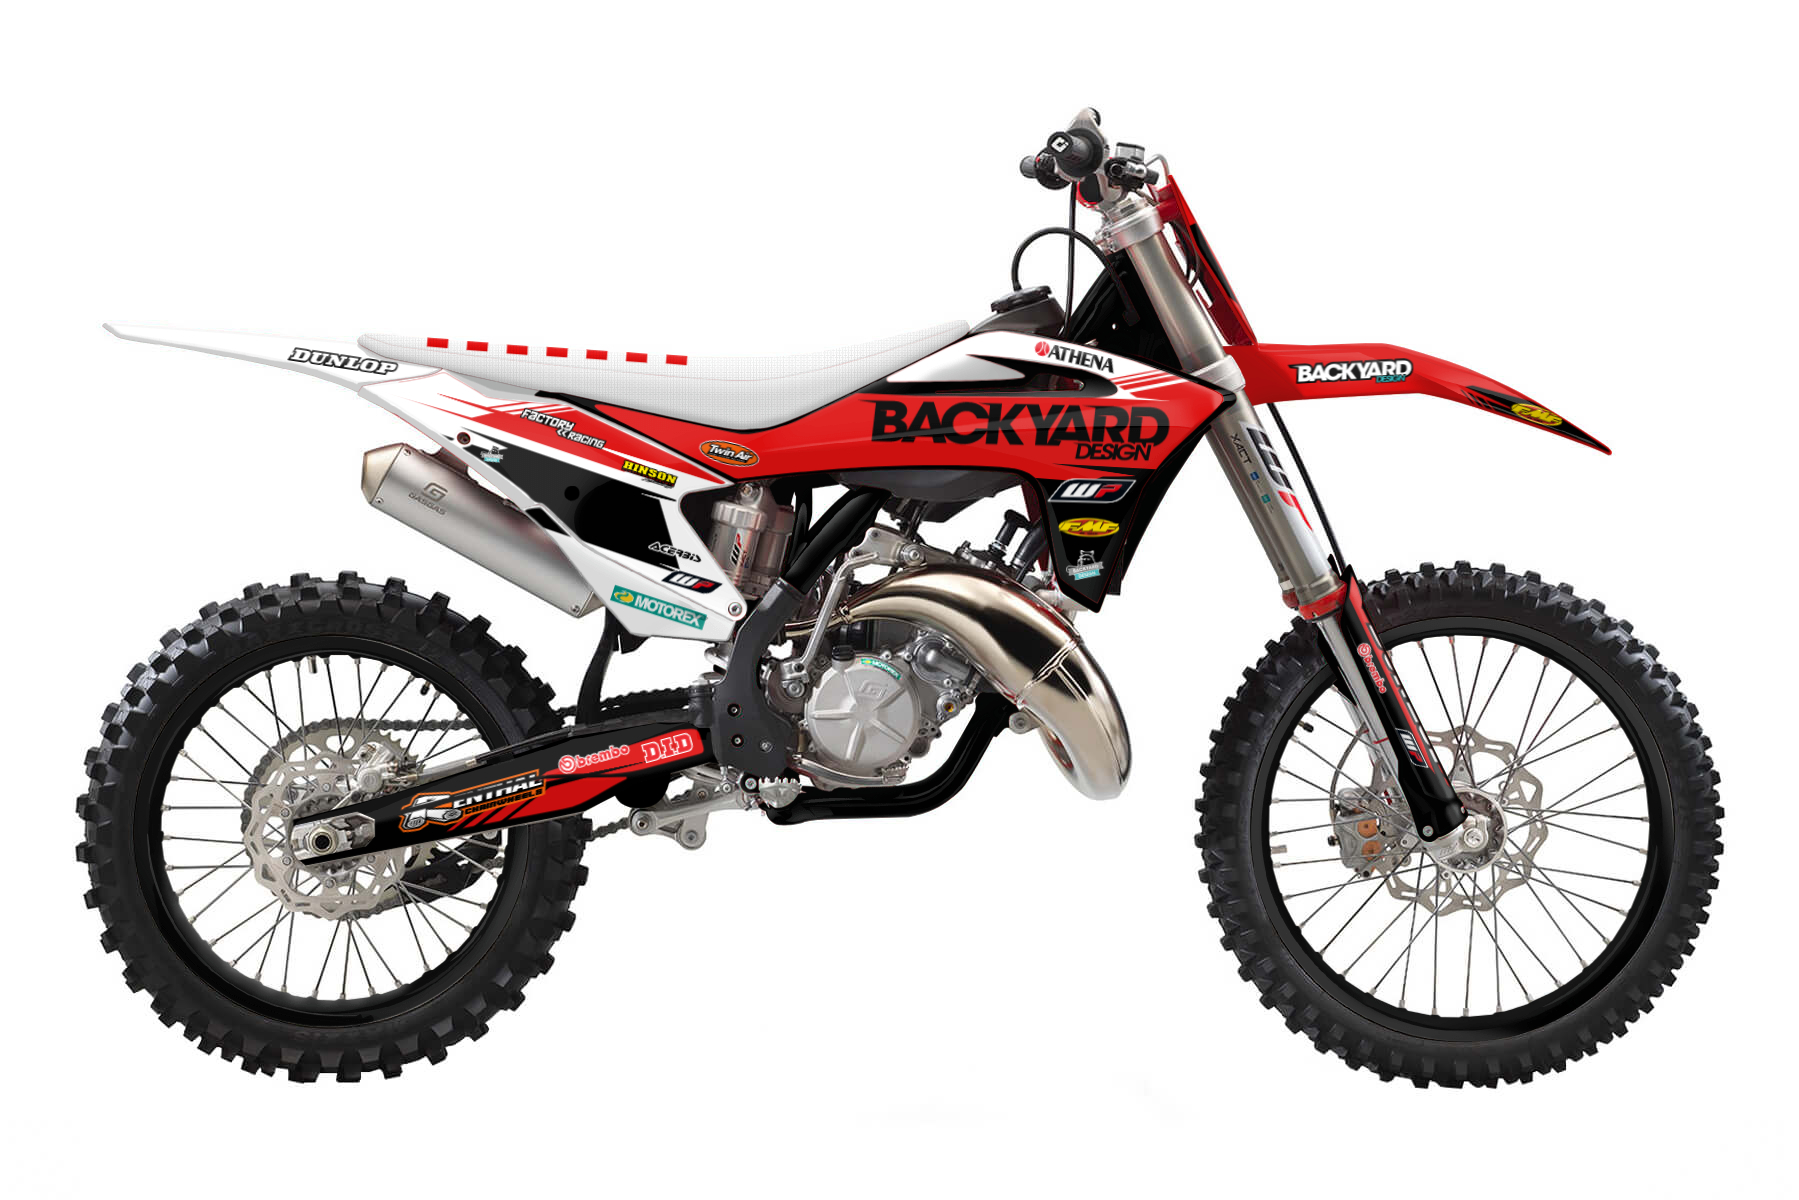 GasGas MC125 MX Graphic Kits  A two-stroke 125 cc engine is combined with a six speed transmission. In sum you get a bike that is hard to beat on the track and guarantees you tons of fun.